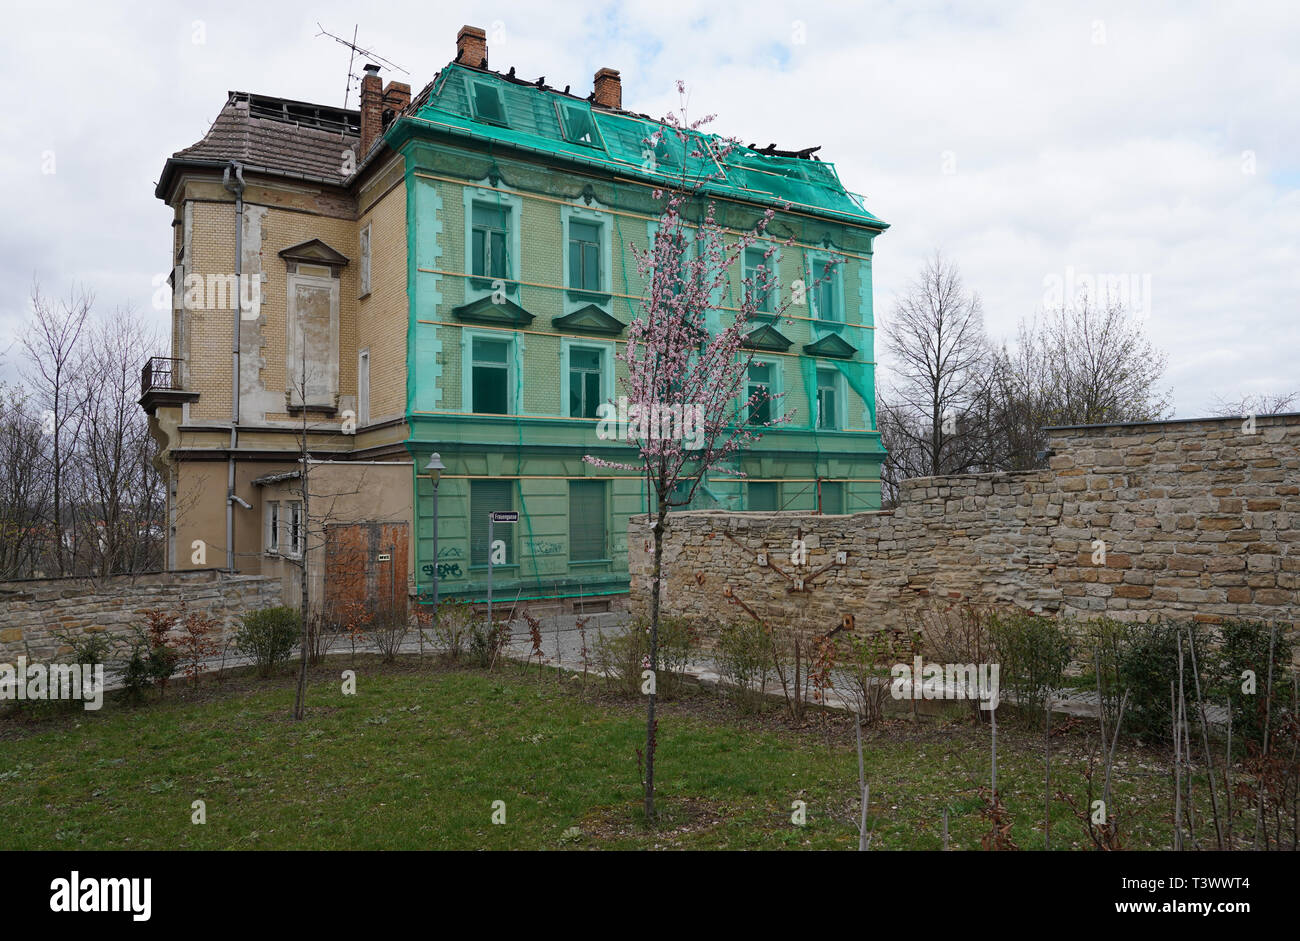 Zeitz, Germany. 26th Mar, 2019. An unrenovated house at the city wall in Zeitz. In a dpa discussion with a city tour, the mayor of Zeitz commented on topics such as coal withdrawal and structural change. (to dpa 'Hot topic coal: Zeitz wants to be 'cool' in the Central German Ruhr') Credit: Peter Endig/dpa/Alamy Live News - Stock Image